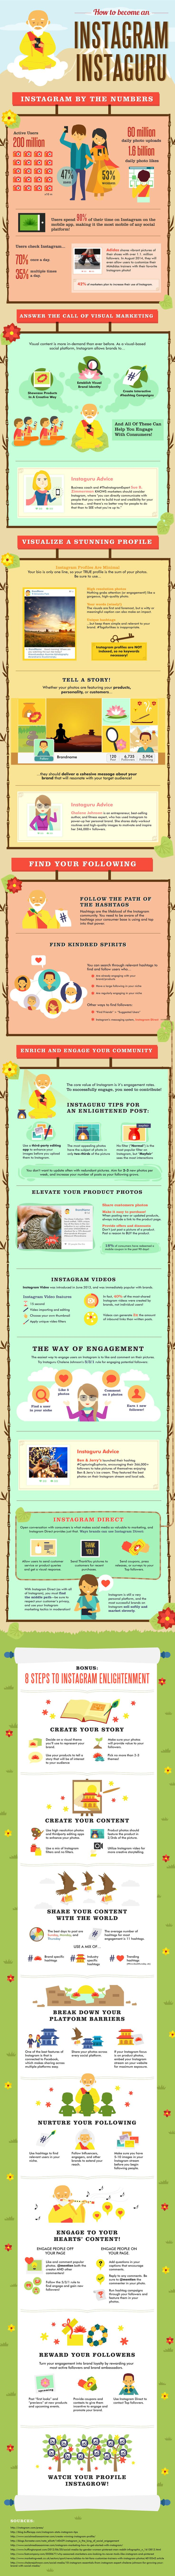 Instagram-Marketing: 29 Tipps für mehr Engagement. (Quelle: